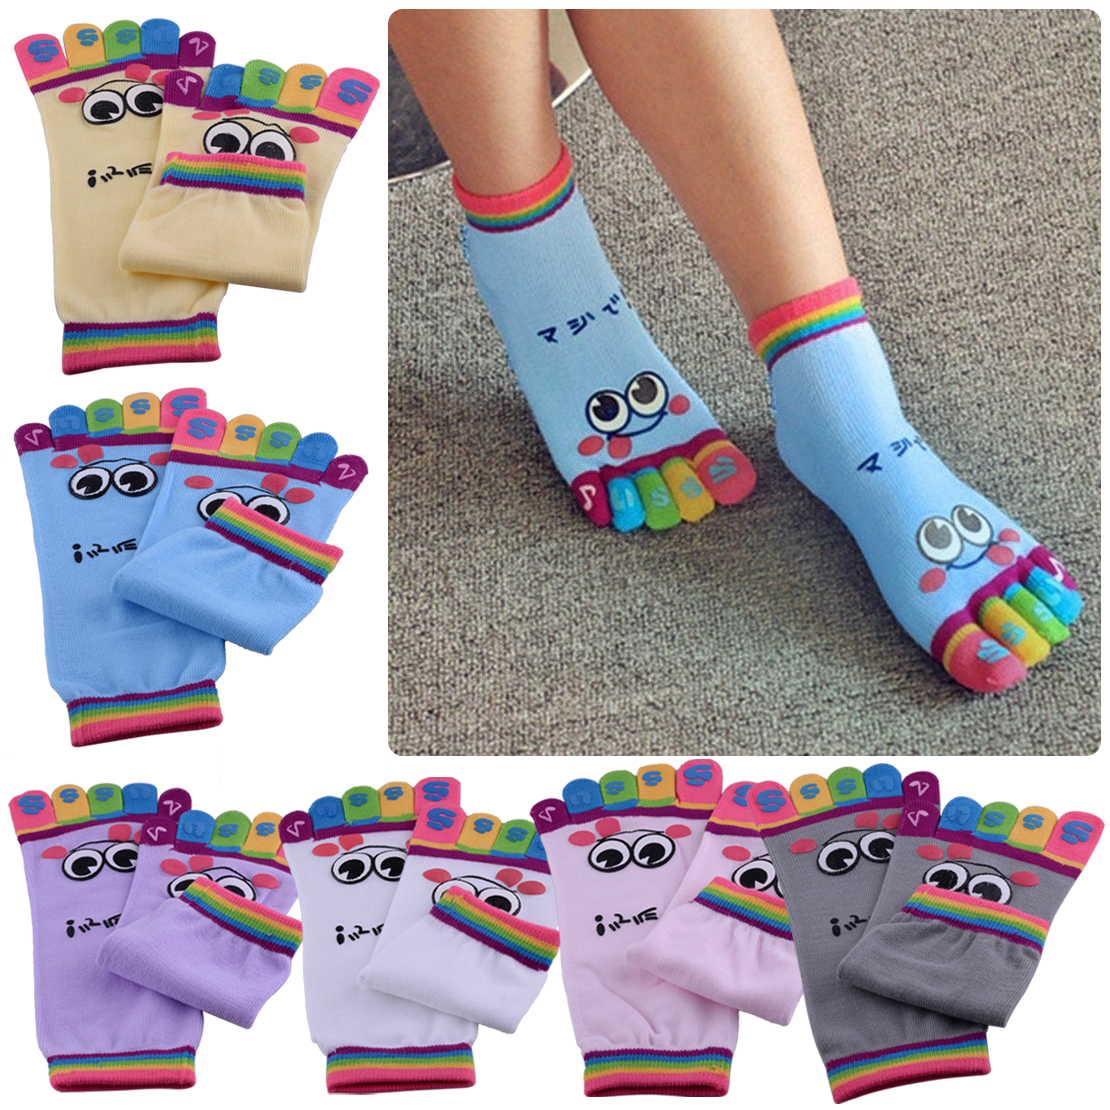 6 pairs Strechy Loafer Boat Low Cut Nonslip Socks One Size UK 4-5.5